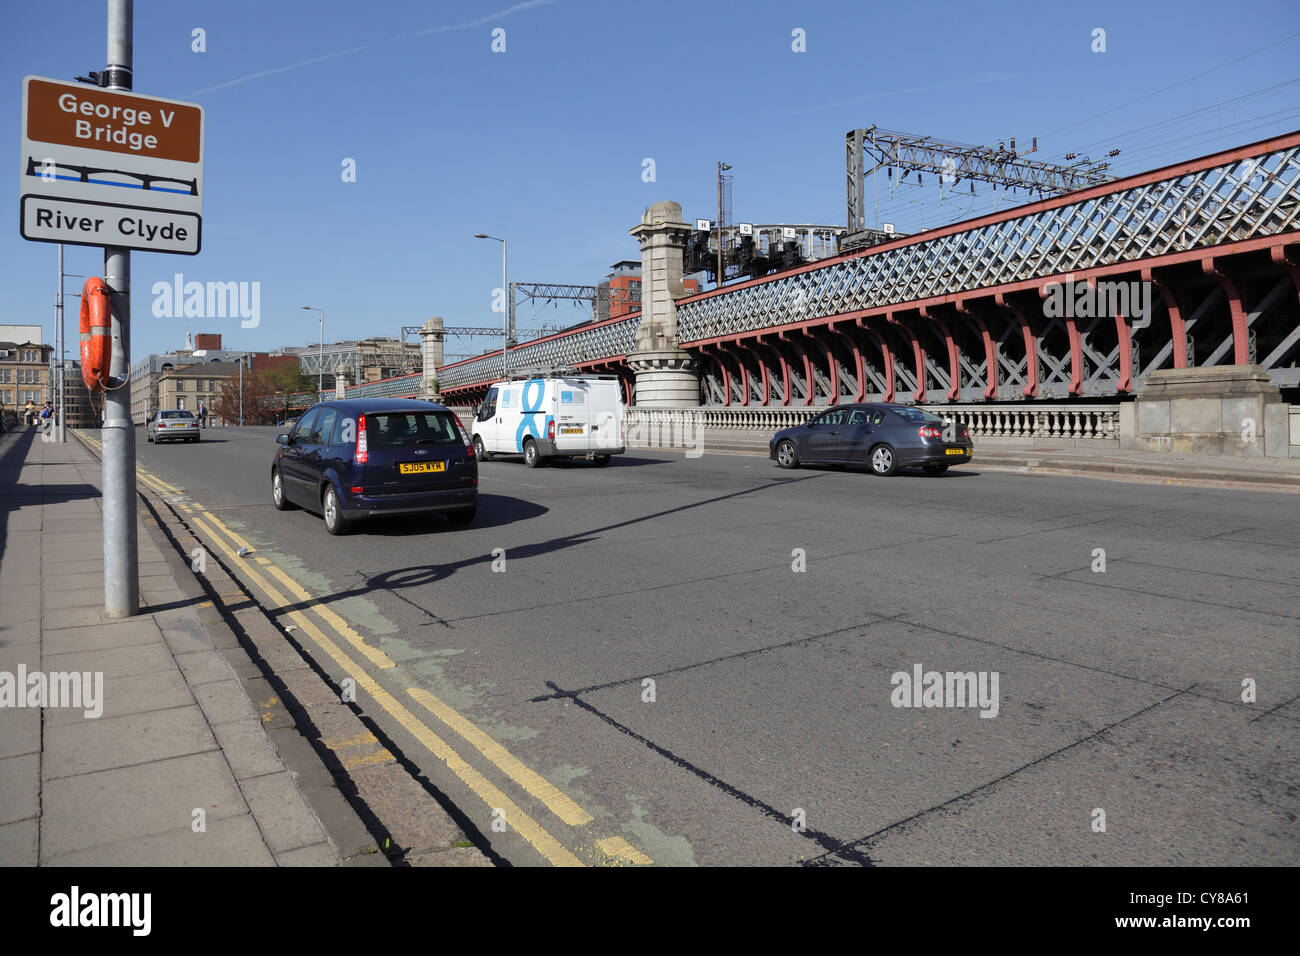 George V Bridge over the River Clyde with Central Station railway bridge behind, Glasgow, Scotland UK - Stock Image